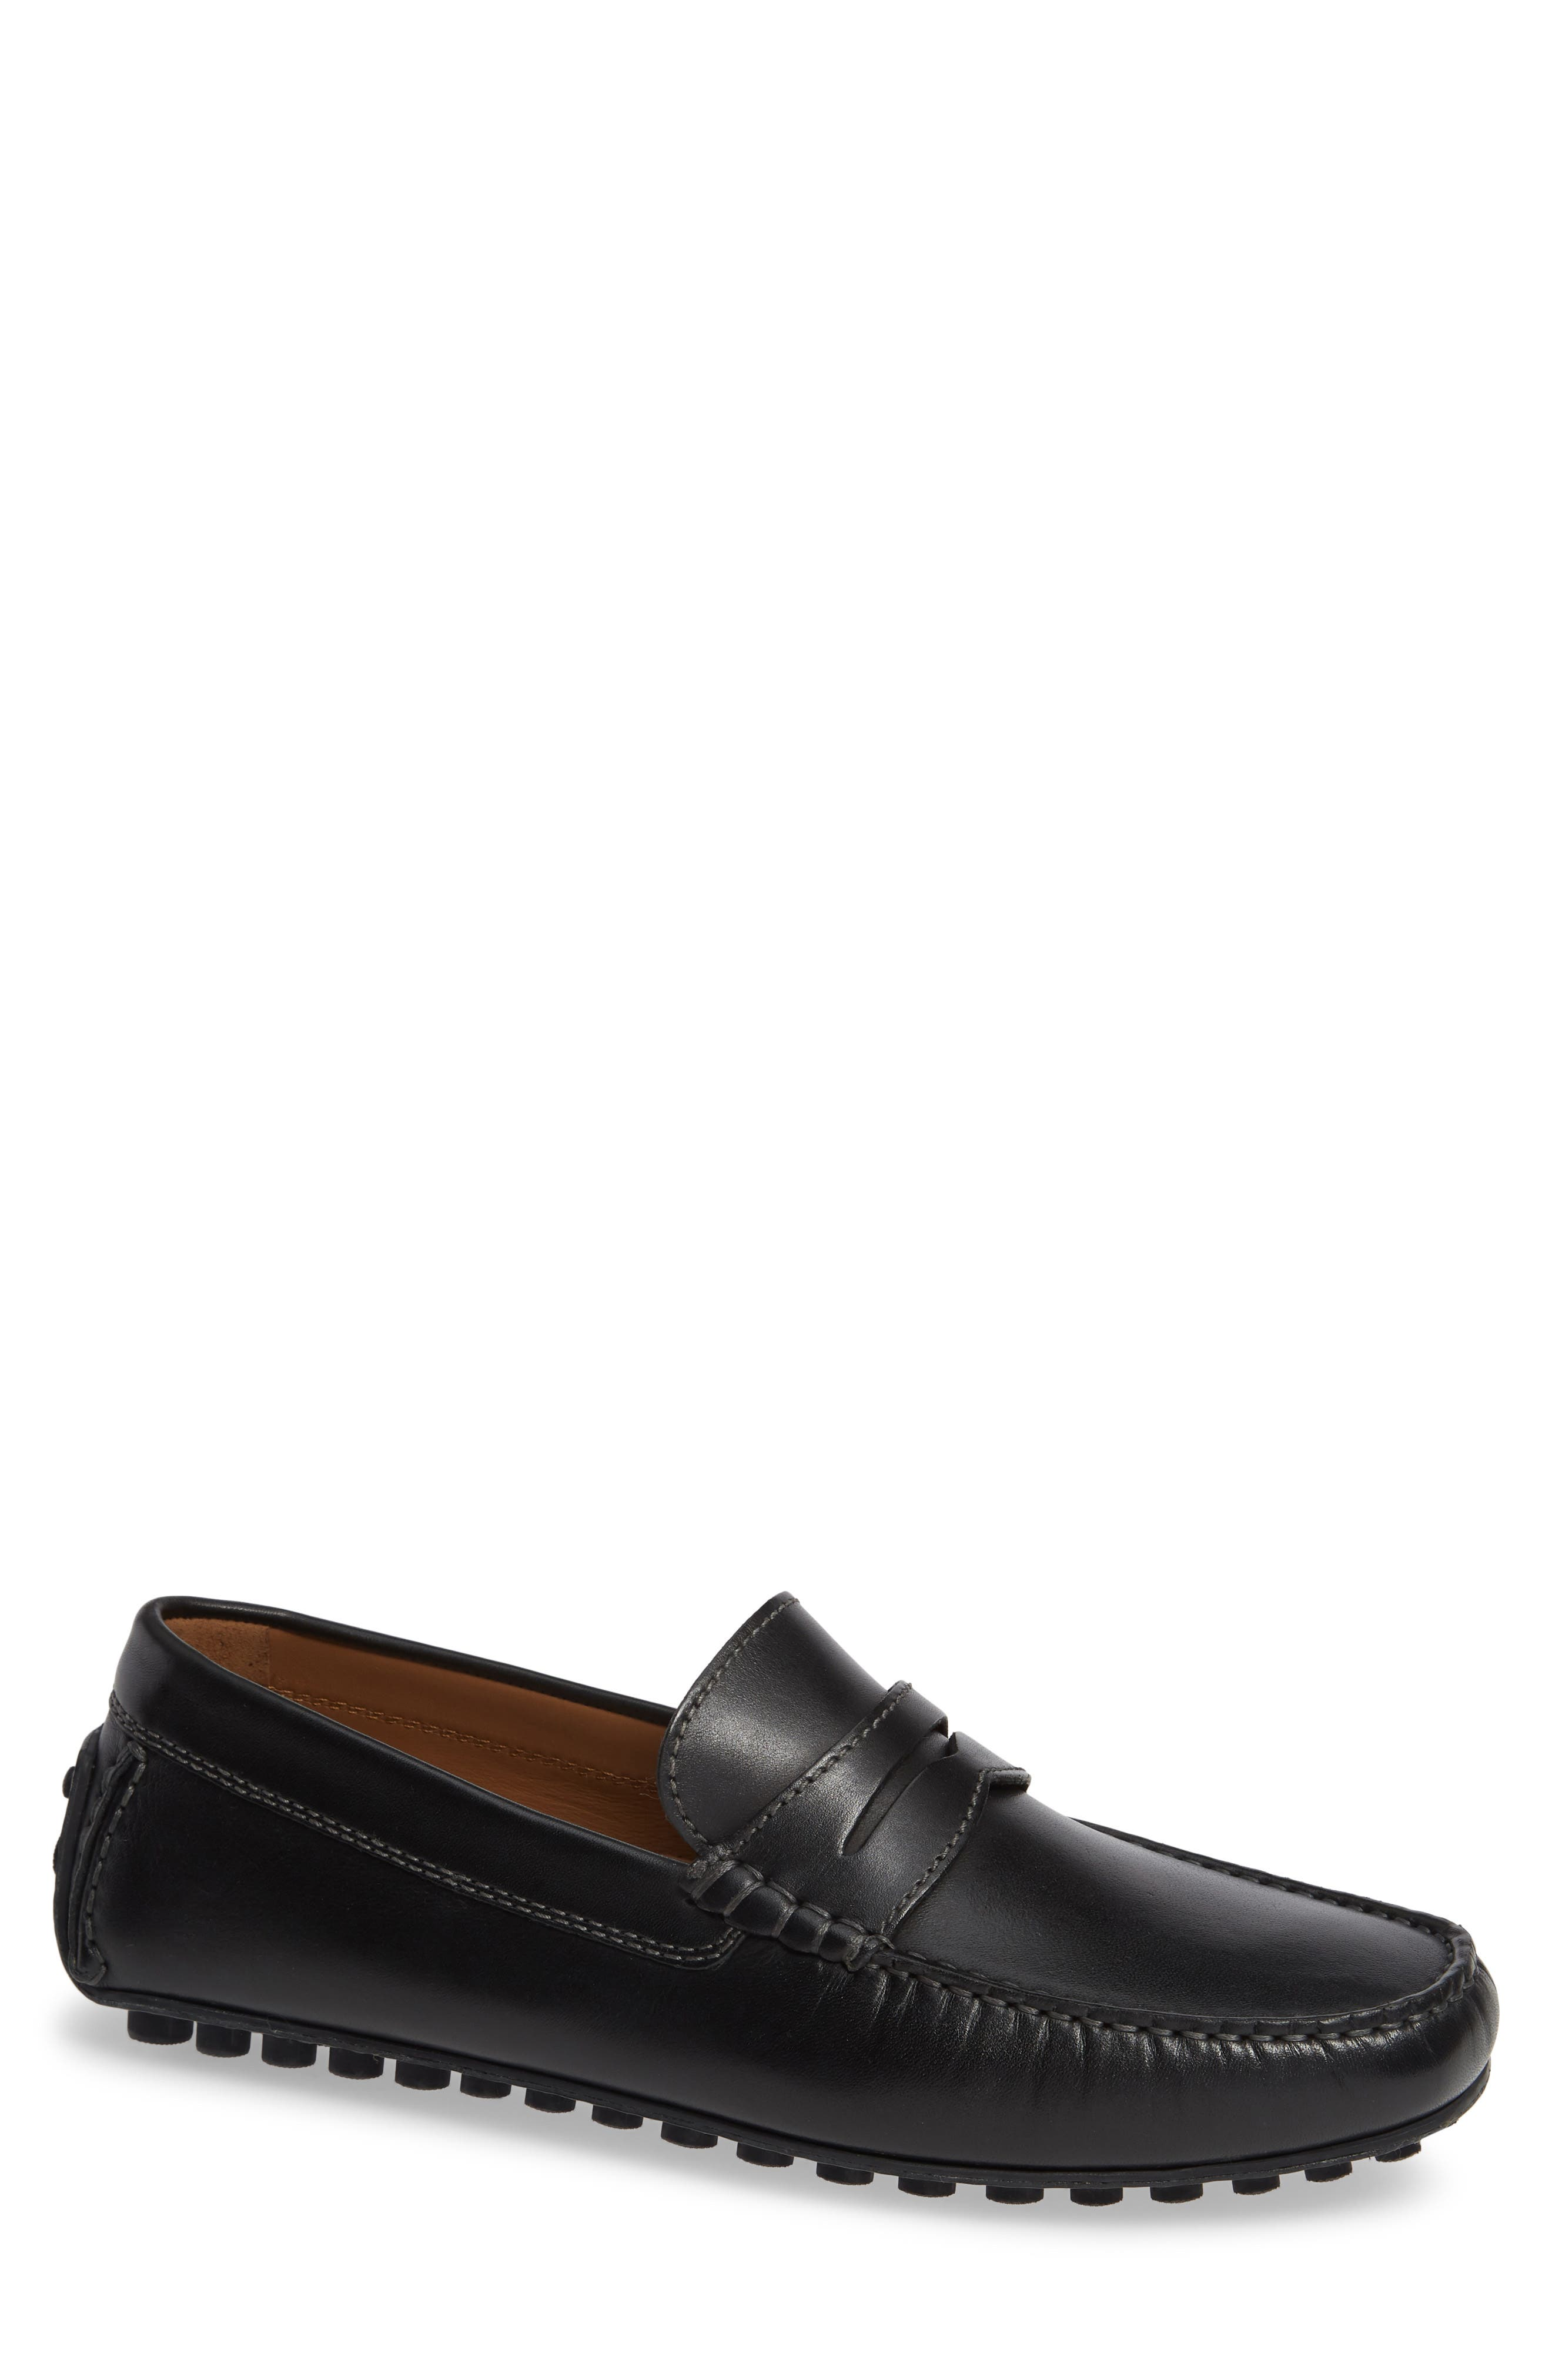 ROBERT TALBOTT Le Mans Penny Driving Moccasin in Black Leather